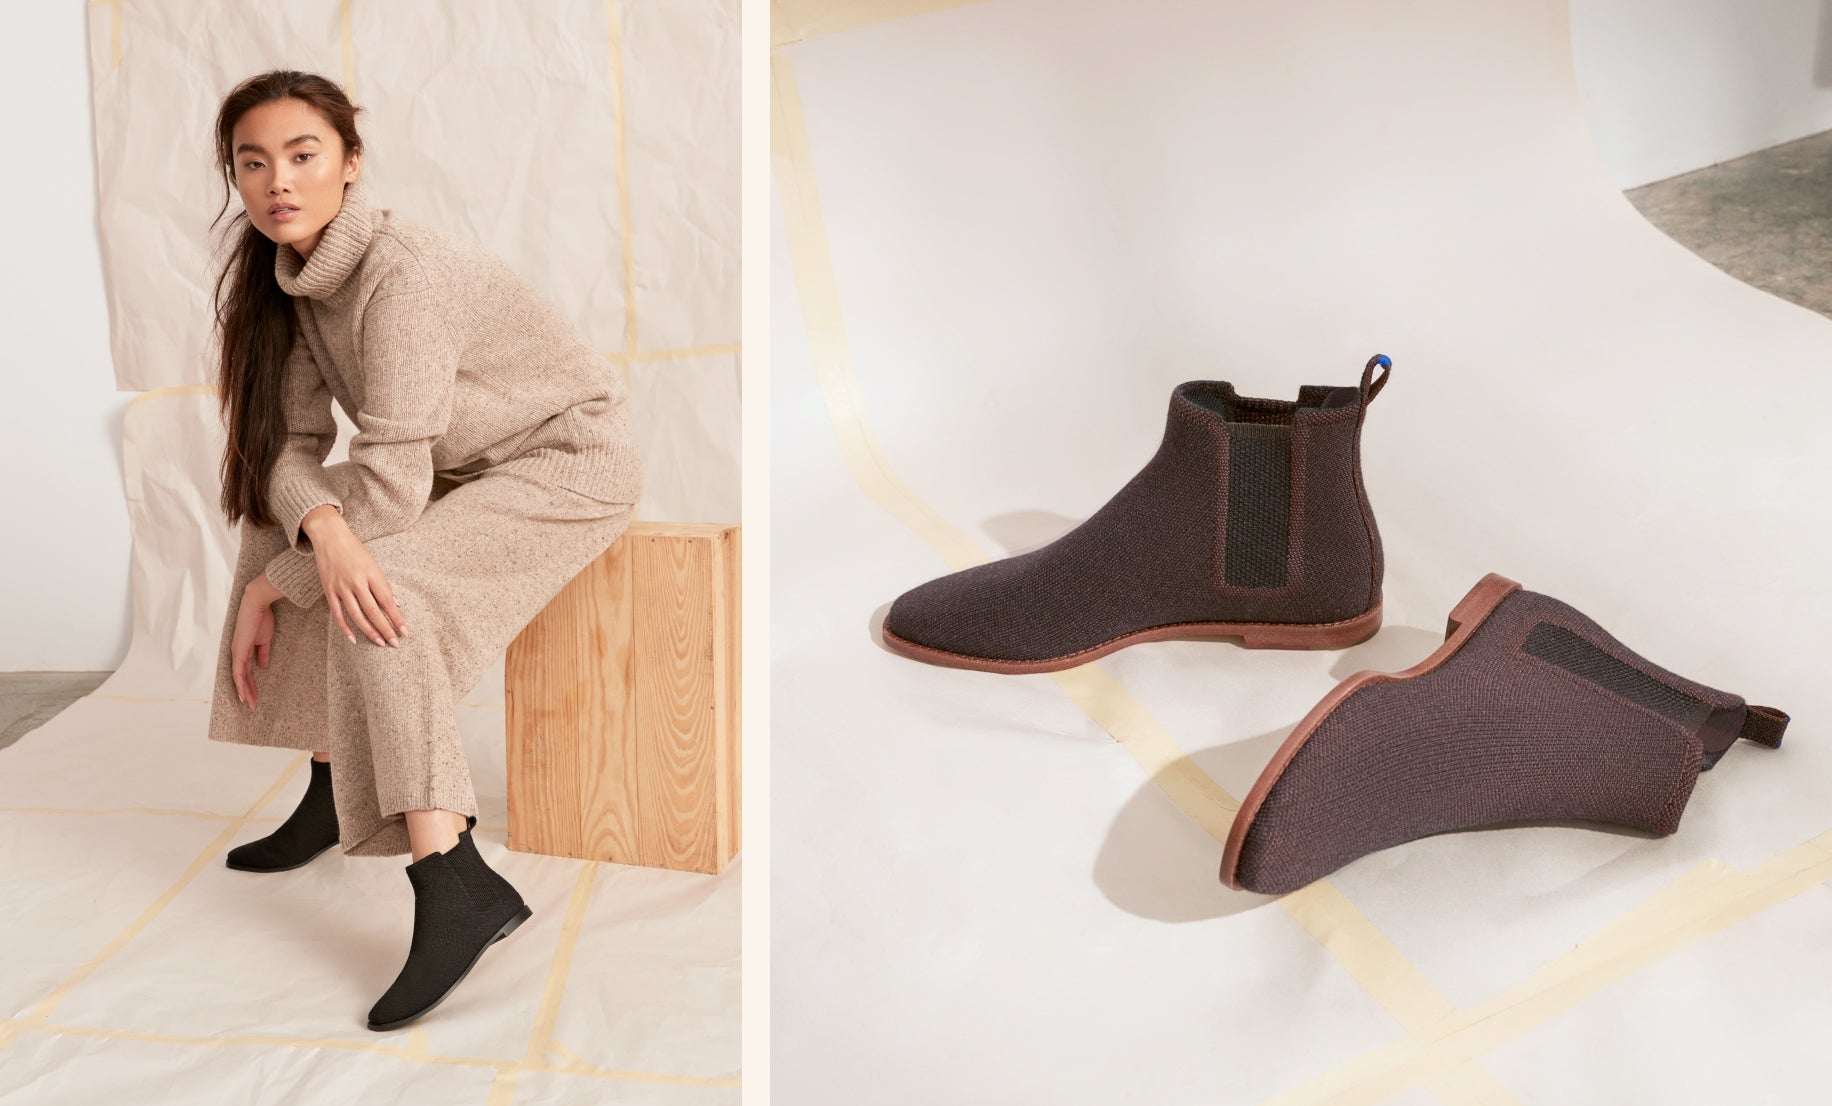 On the left, model sitting on a wooden block wearing The Merino Ankle Boot in Onyx Black. On the right, close up of The Merino Ankle Boot in Cocoa Brown on papered flooring.